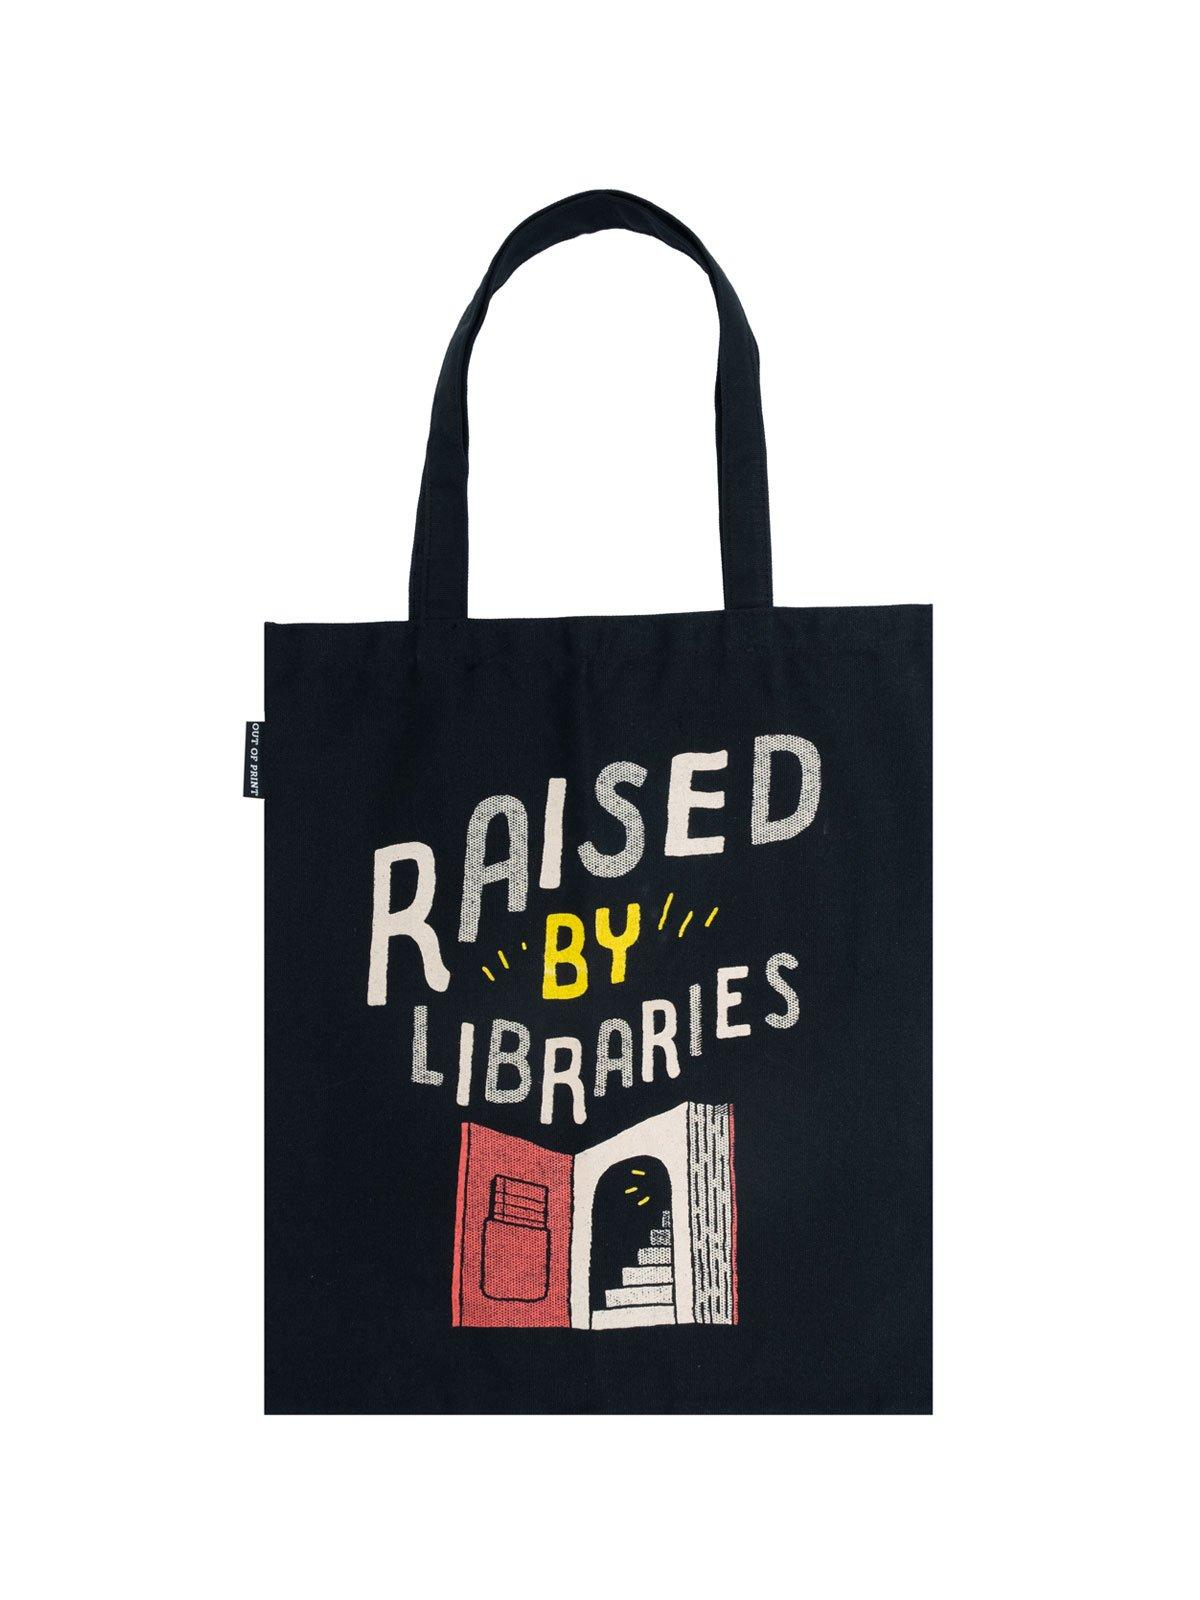 """Black canvas tote bag with handles.  The design on the front says """"Raised by Libraries"""" in white and yellow text with an open book below"""